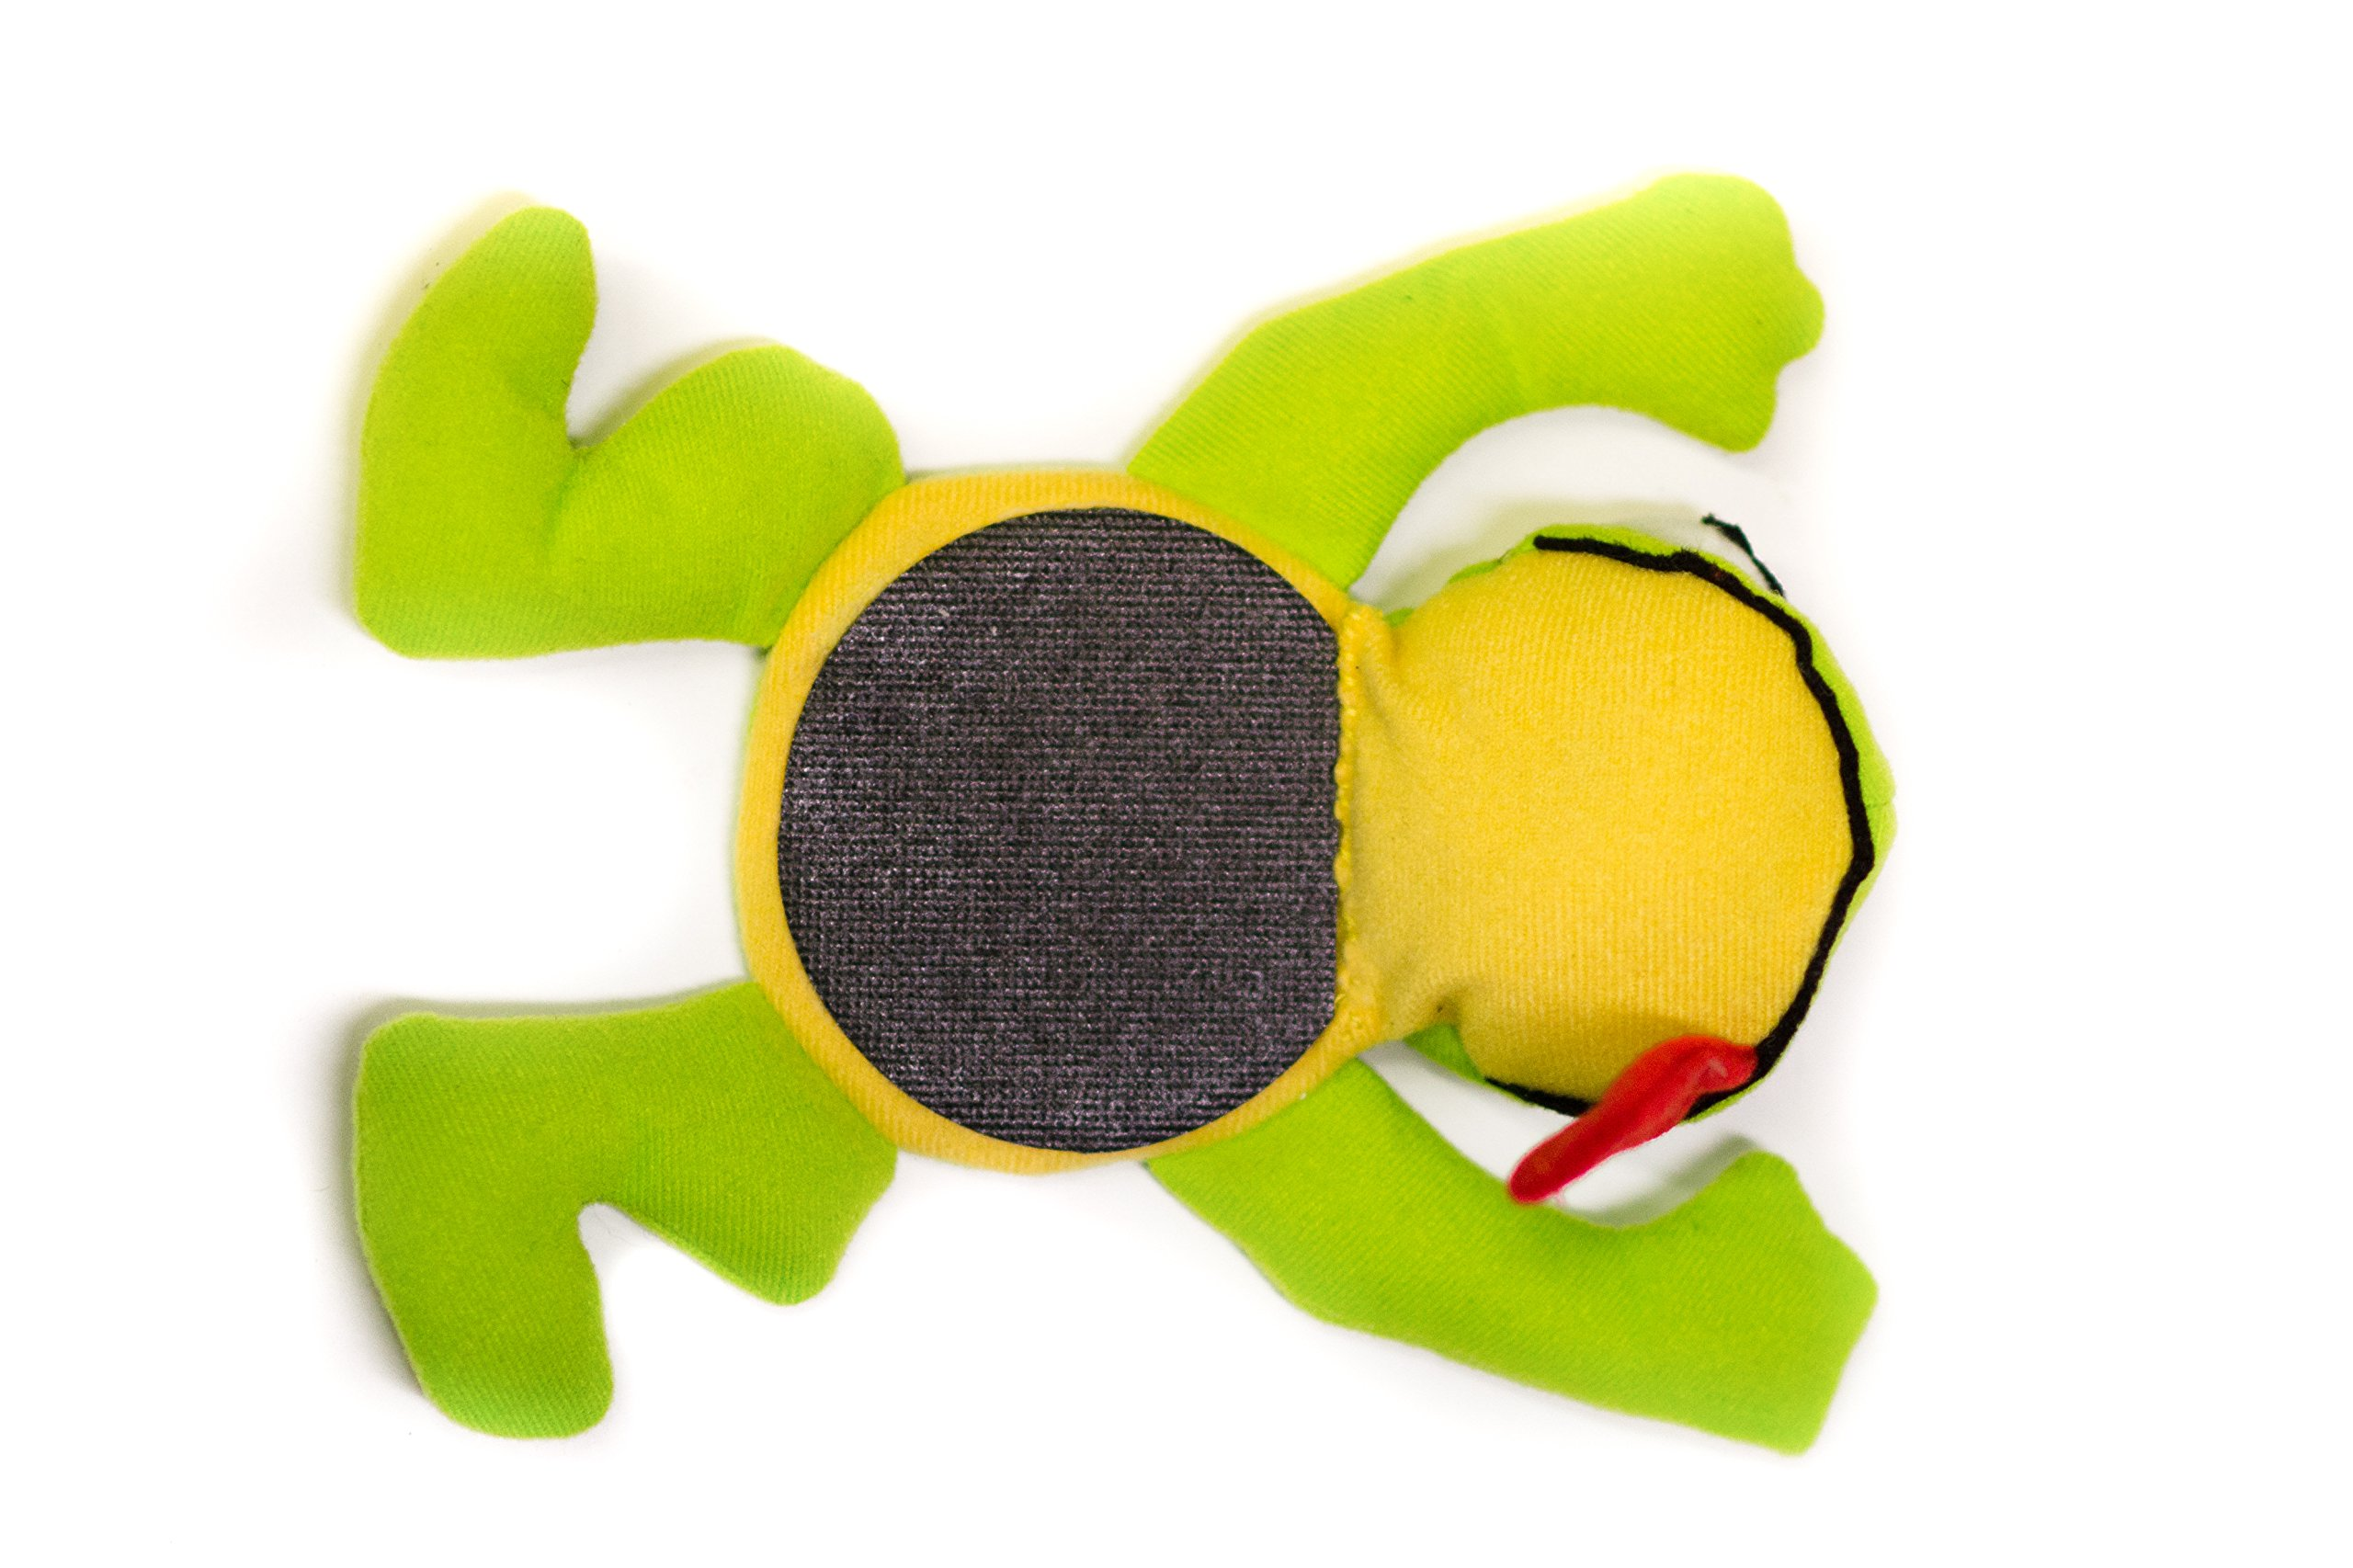 Critter Coasters Motorcycle Kickstand Pad - Mr. Frog - Fits Any Motorcycle. Made in USA. Most Unique Kickstand Plate Puck Coaster Side Stand. by Critter Coasters (Image #5)